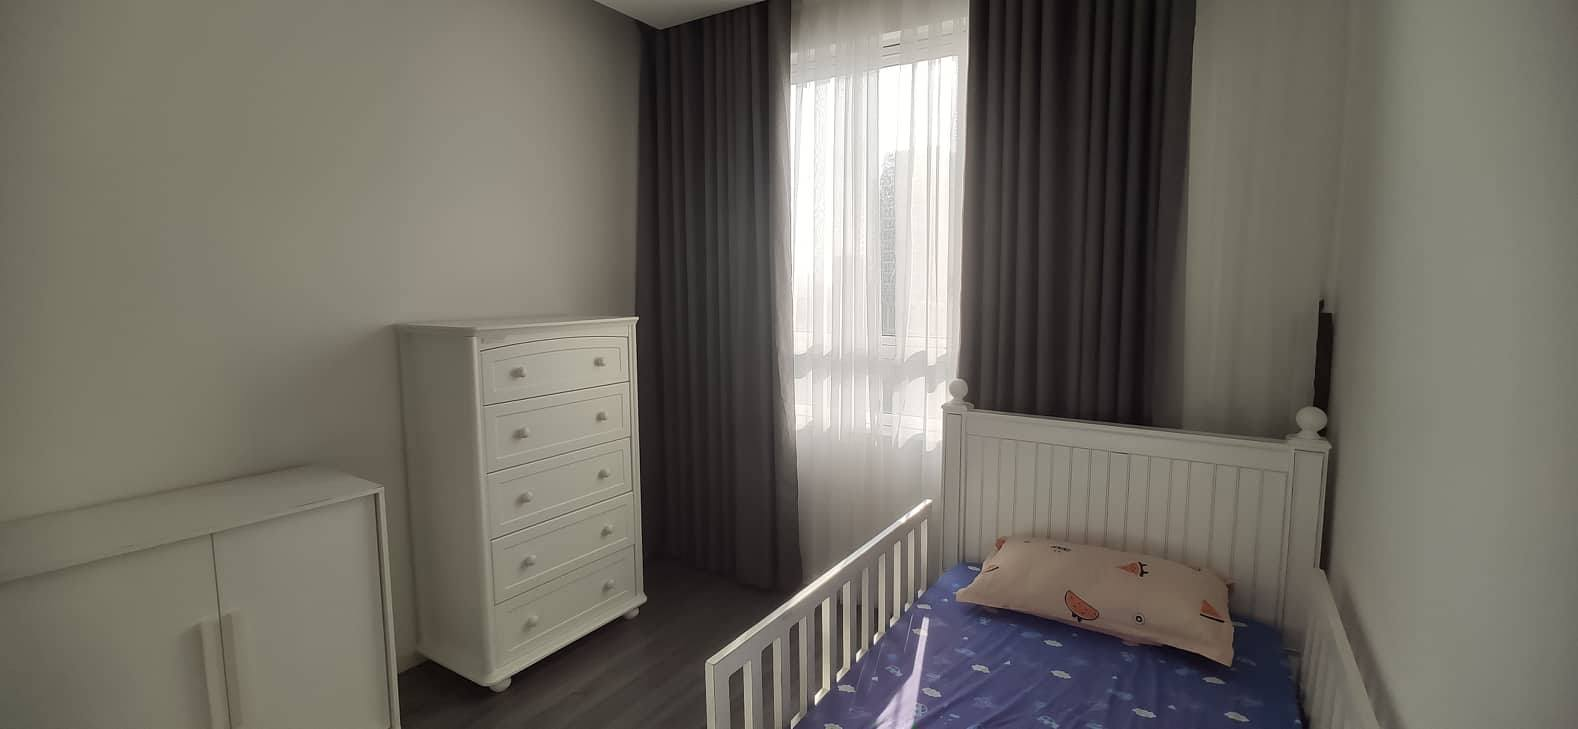 Apartment for rent D205509 (6)